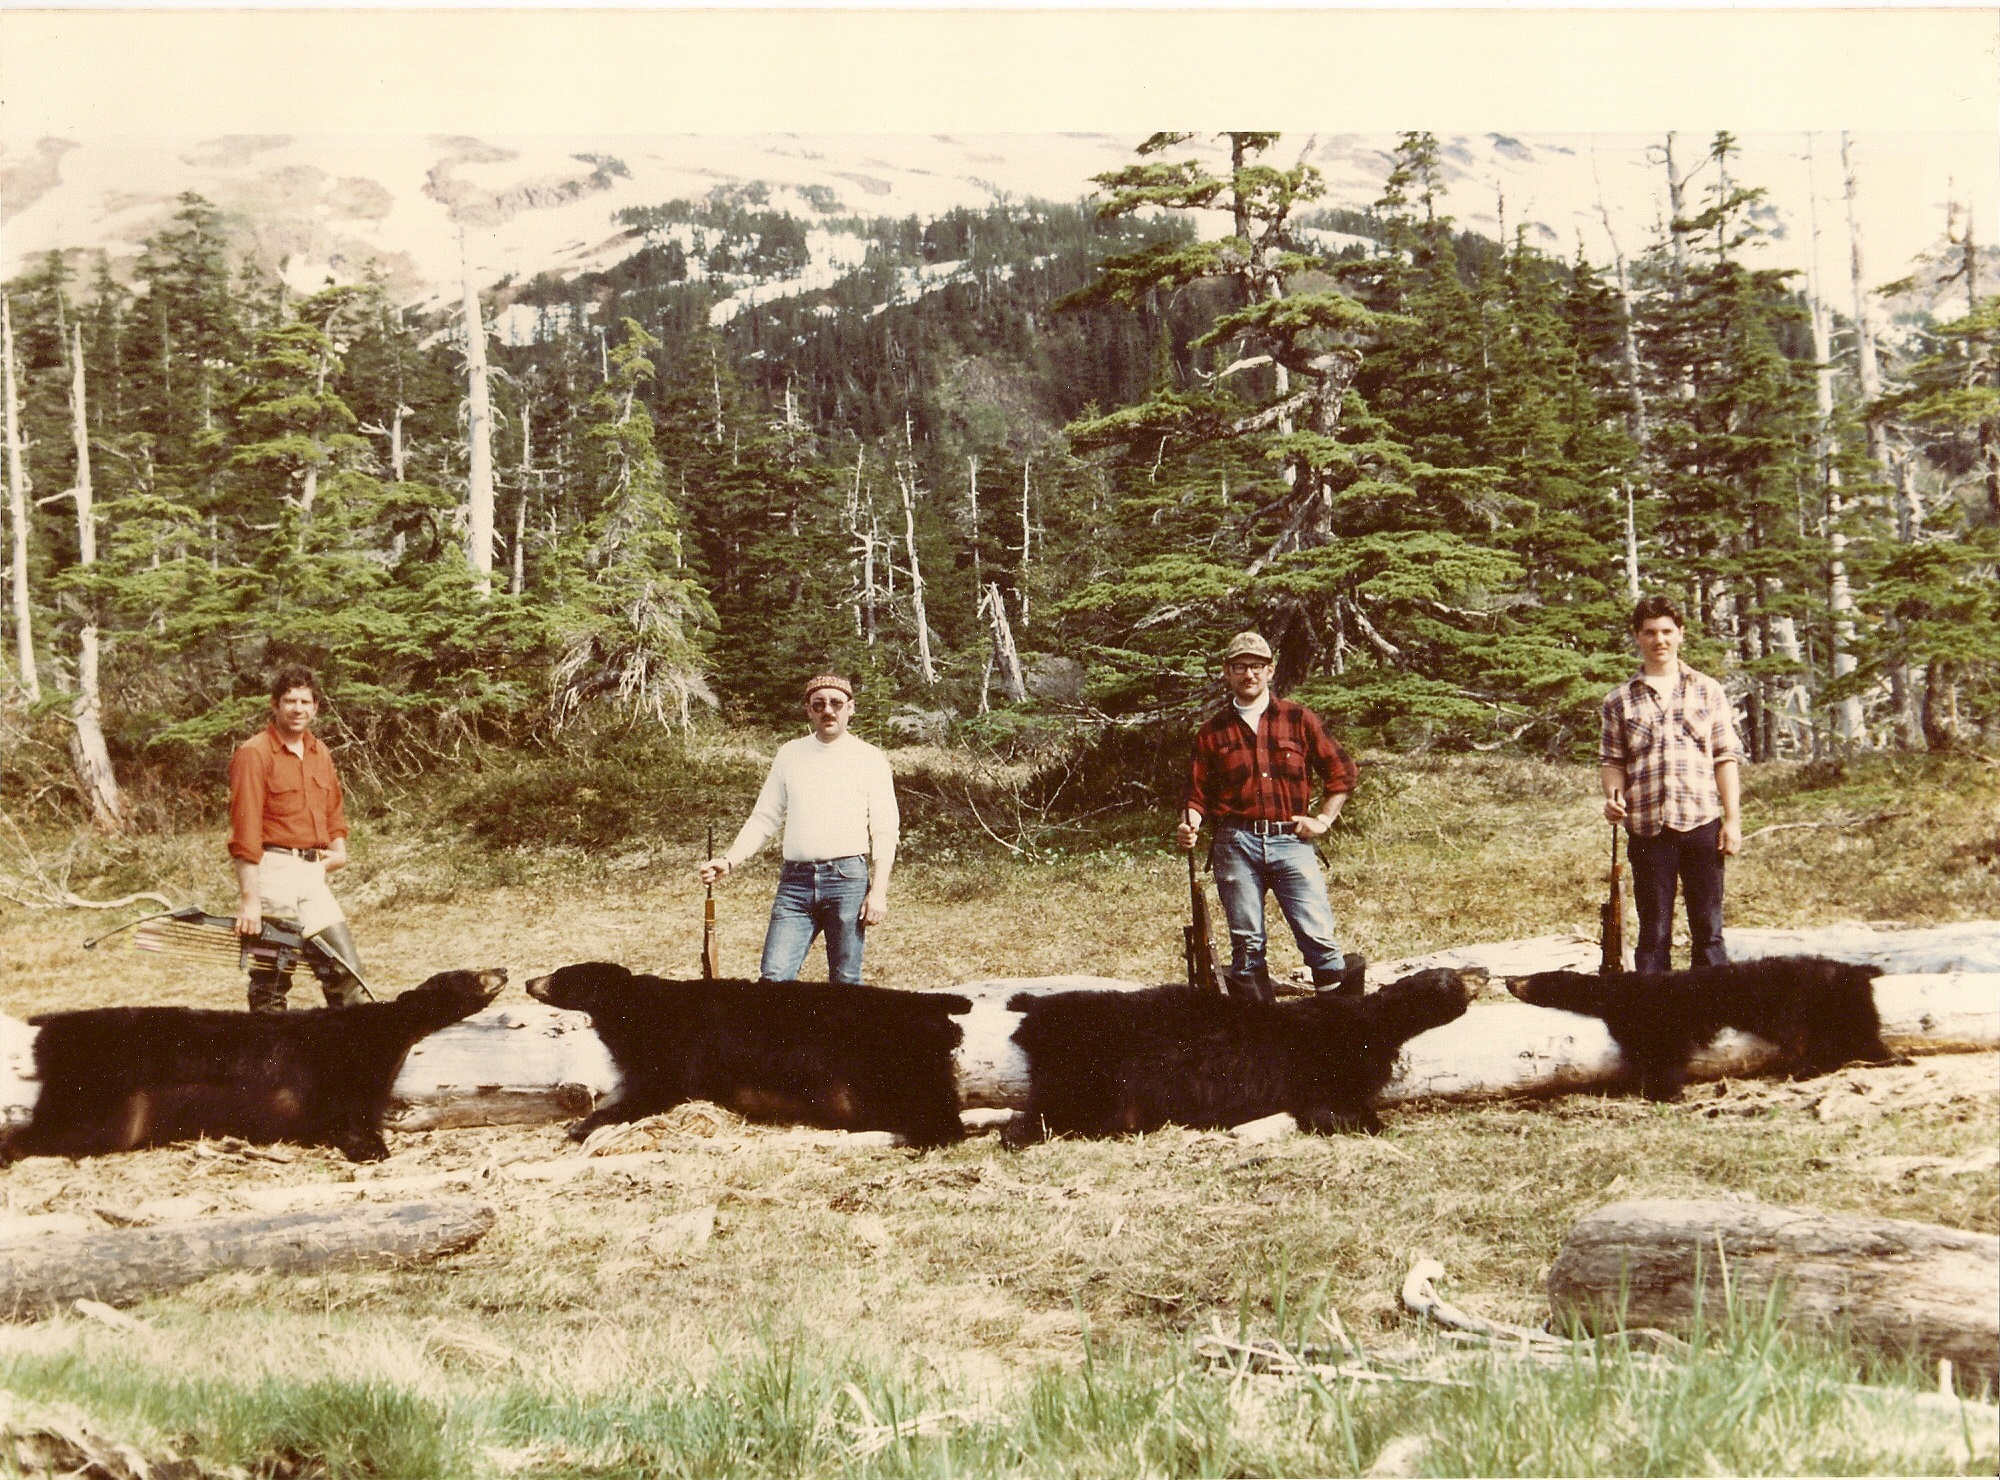 This was the second year that we harvested 4 bears in a weekend.  Two of these bears were tagged with radio collars.  From (L to R) myself, Earl Boucher, Dan Schwarzer (later became my partner in the guide business) and Scottie Bailey.